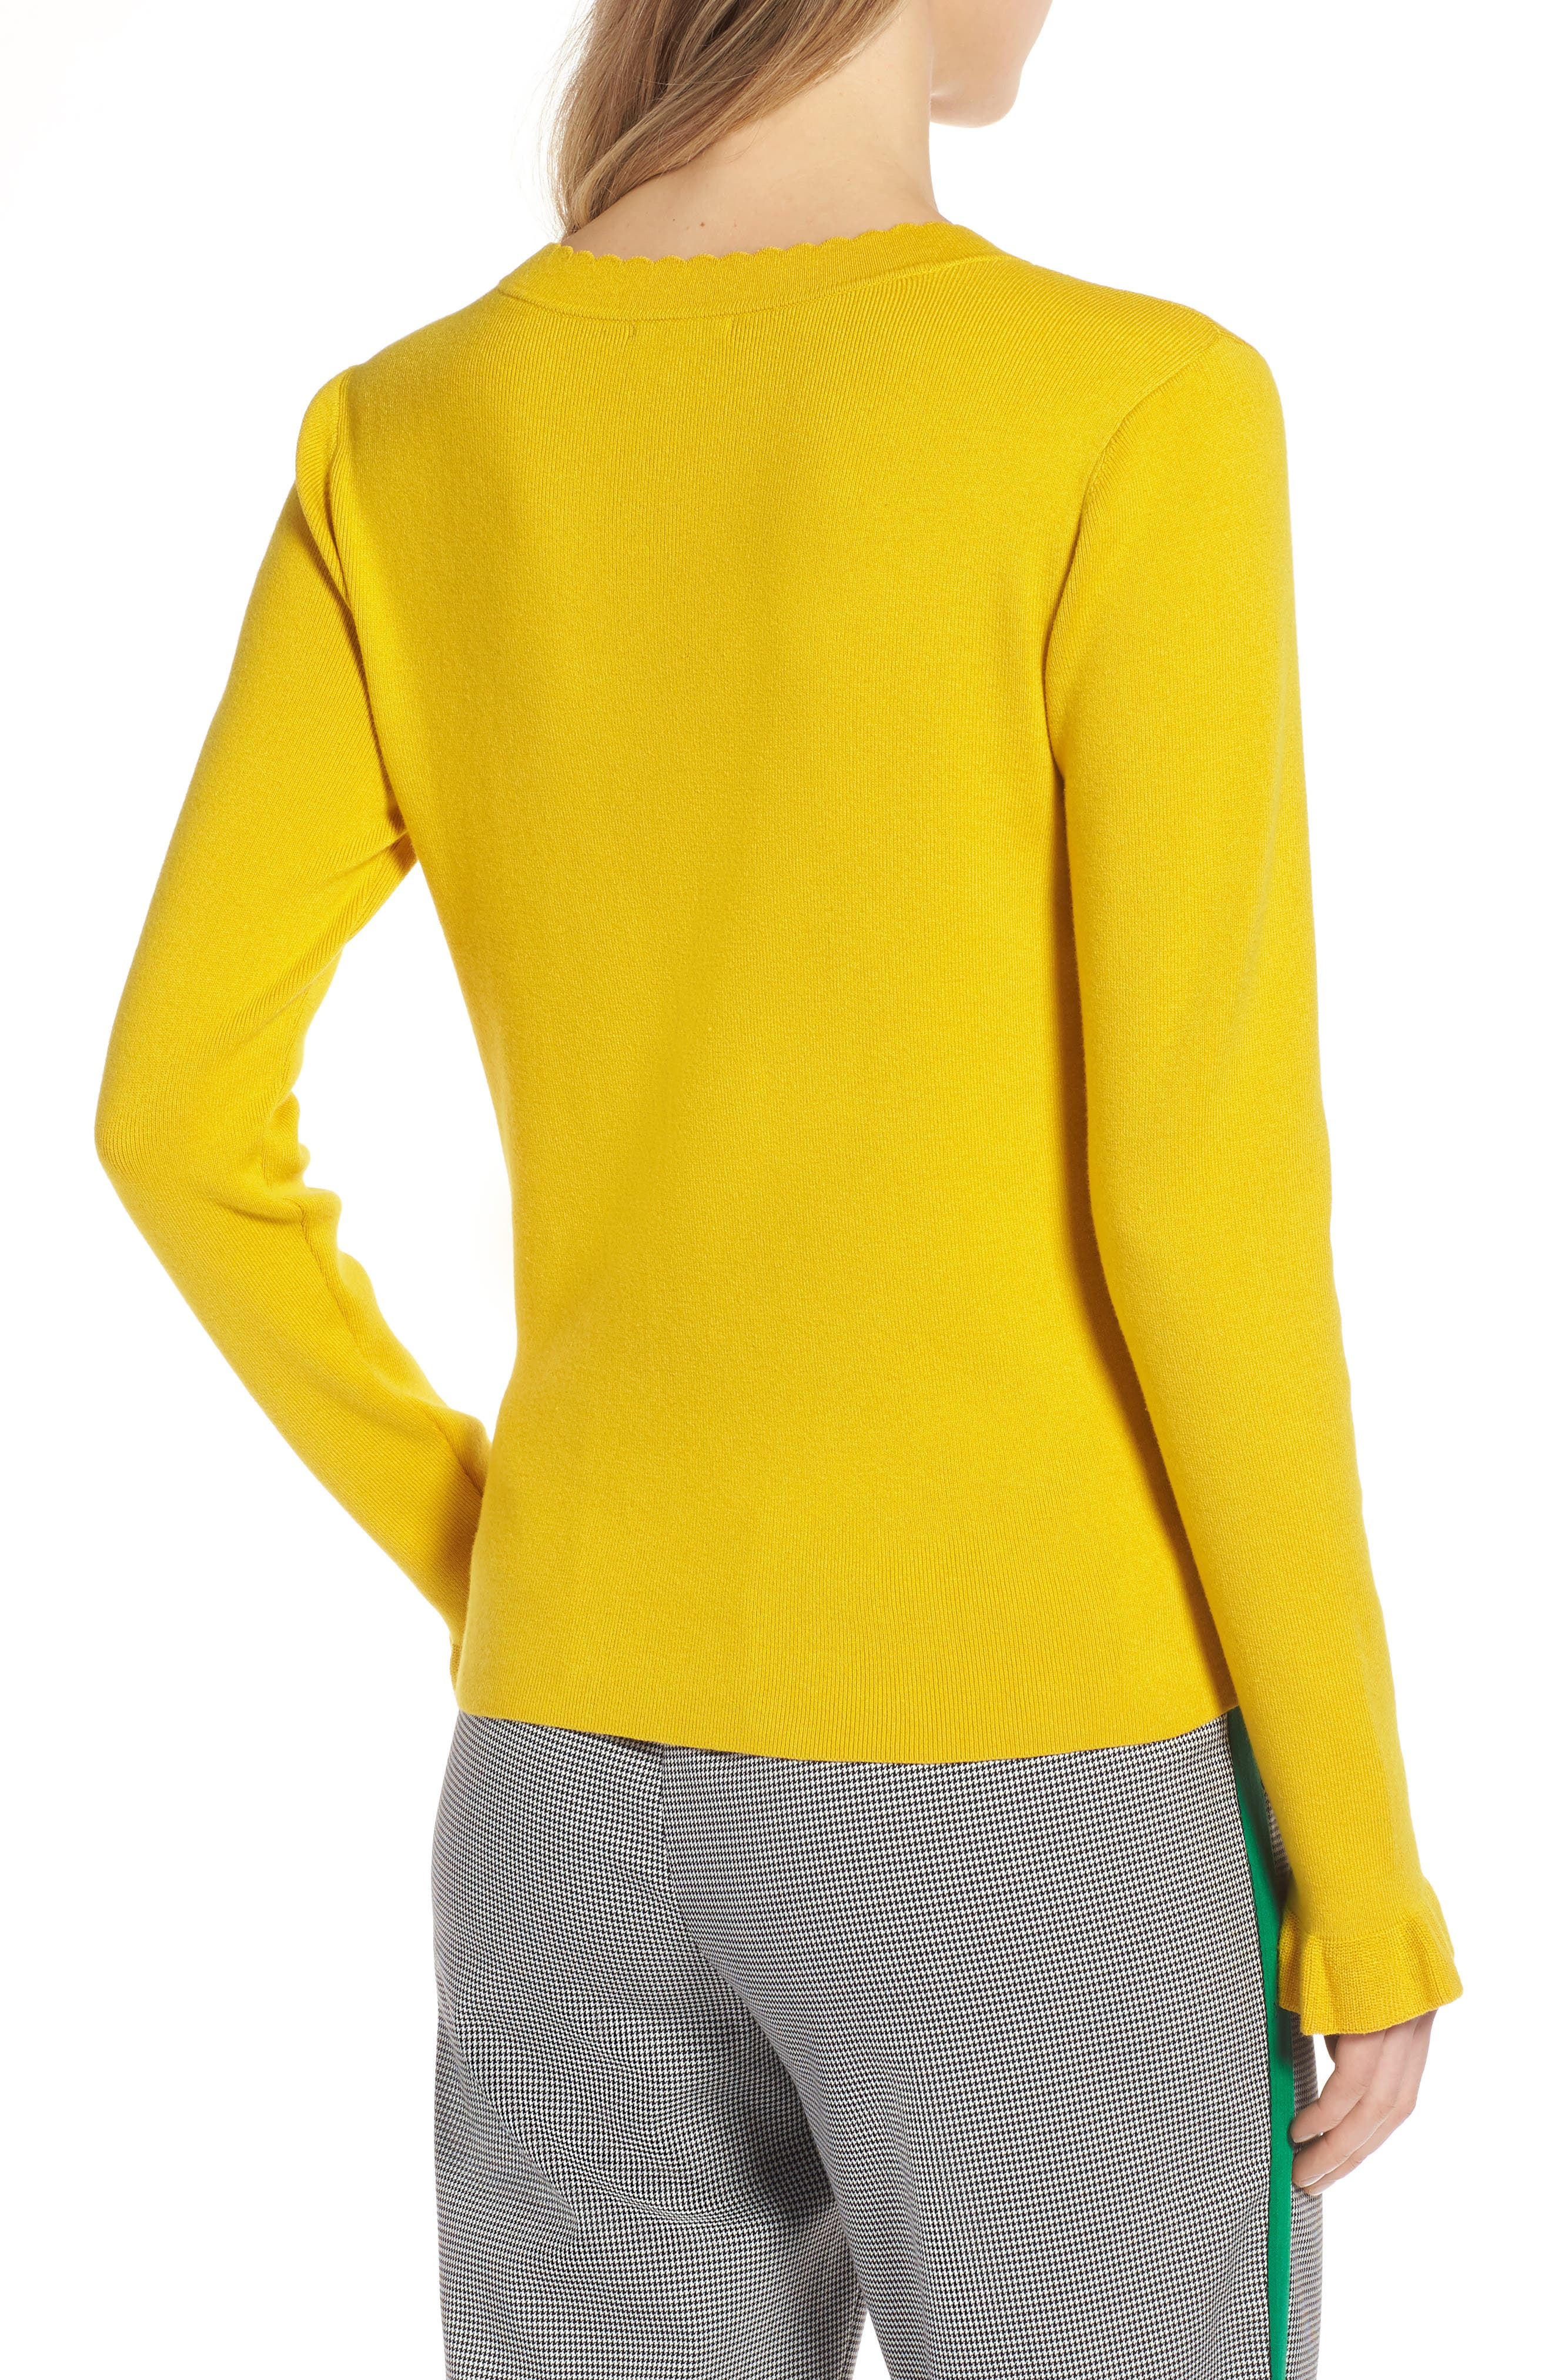 Scallop Trim Sweater,                             Alternate thumbnail 2, color,                             Yellow Sulphur